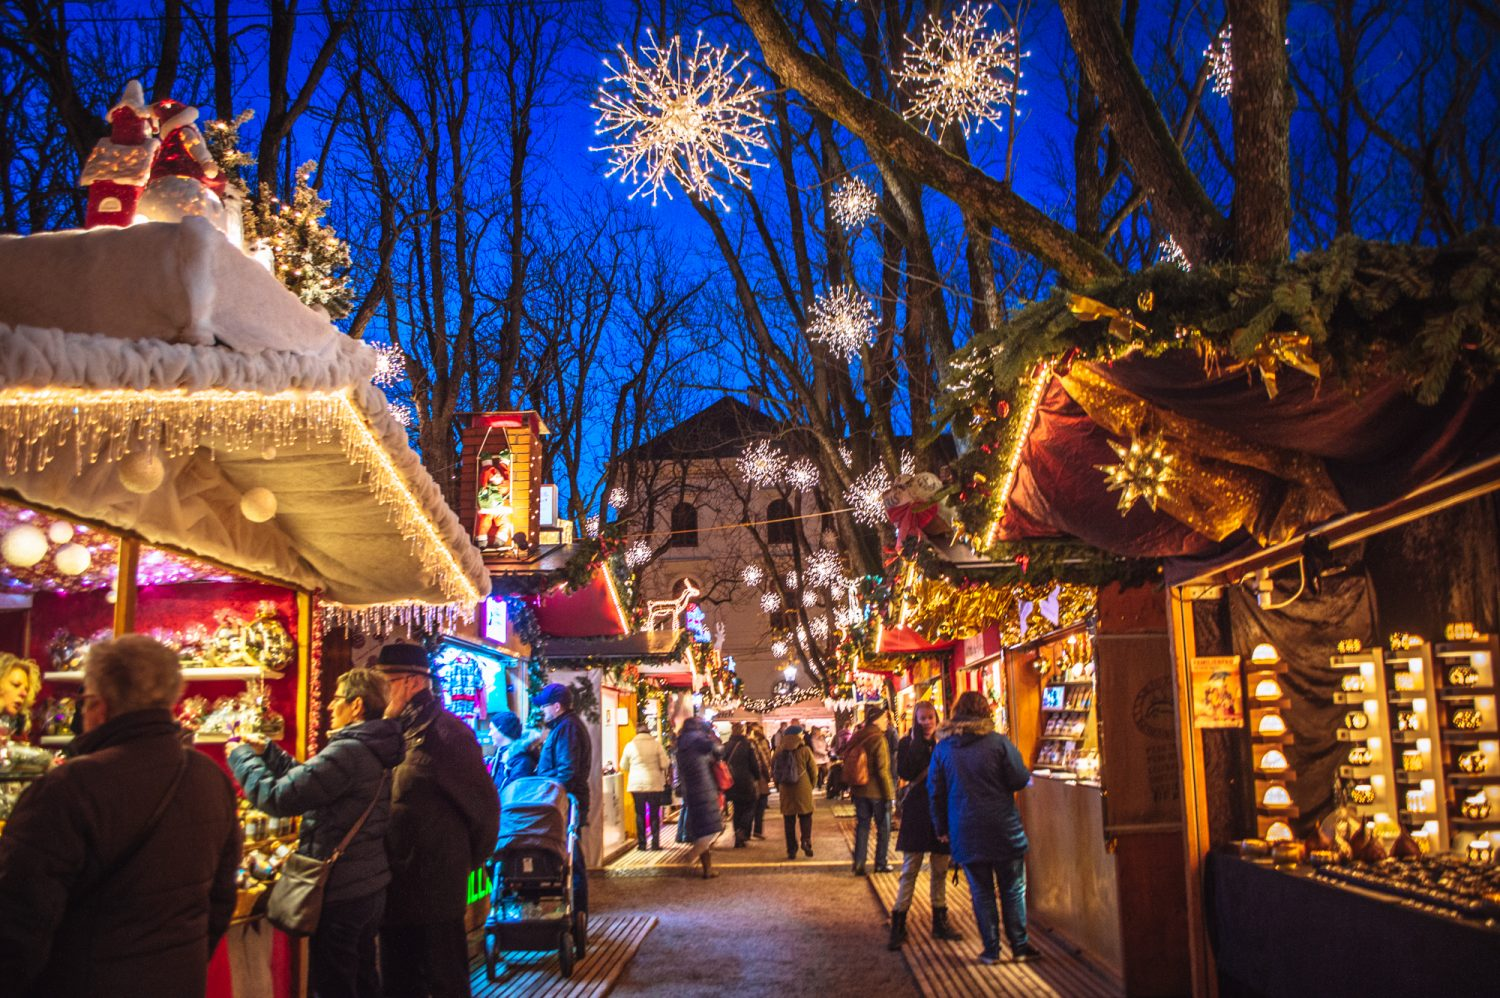 Christmas In Switzerland.The Best Switzerland Christmas Markets To Visit In 2019 A